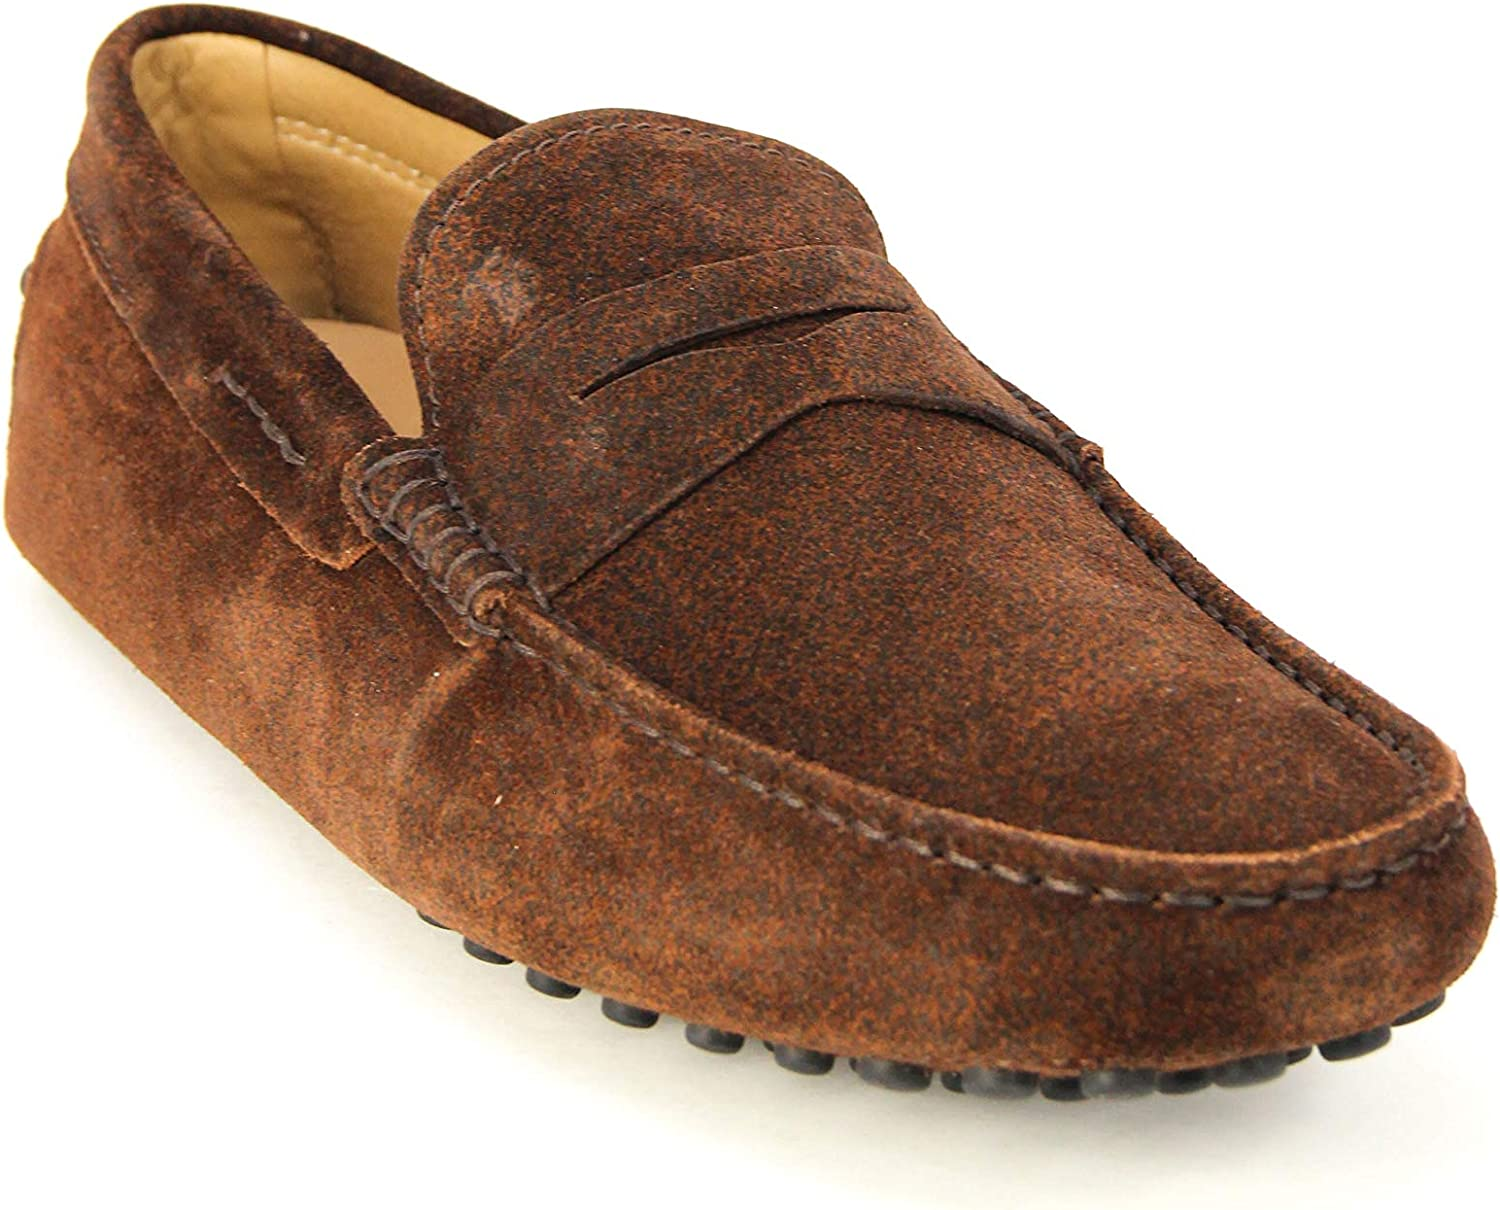 Tod's Men's Mocassino Gommino Leather Moccasins Loafers Shoes, Mogano Brown Suede